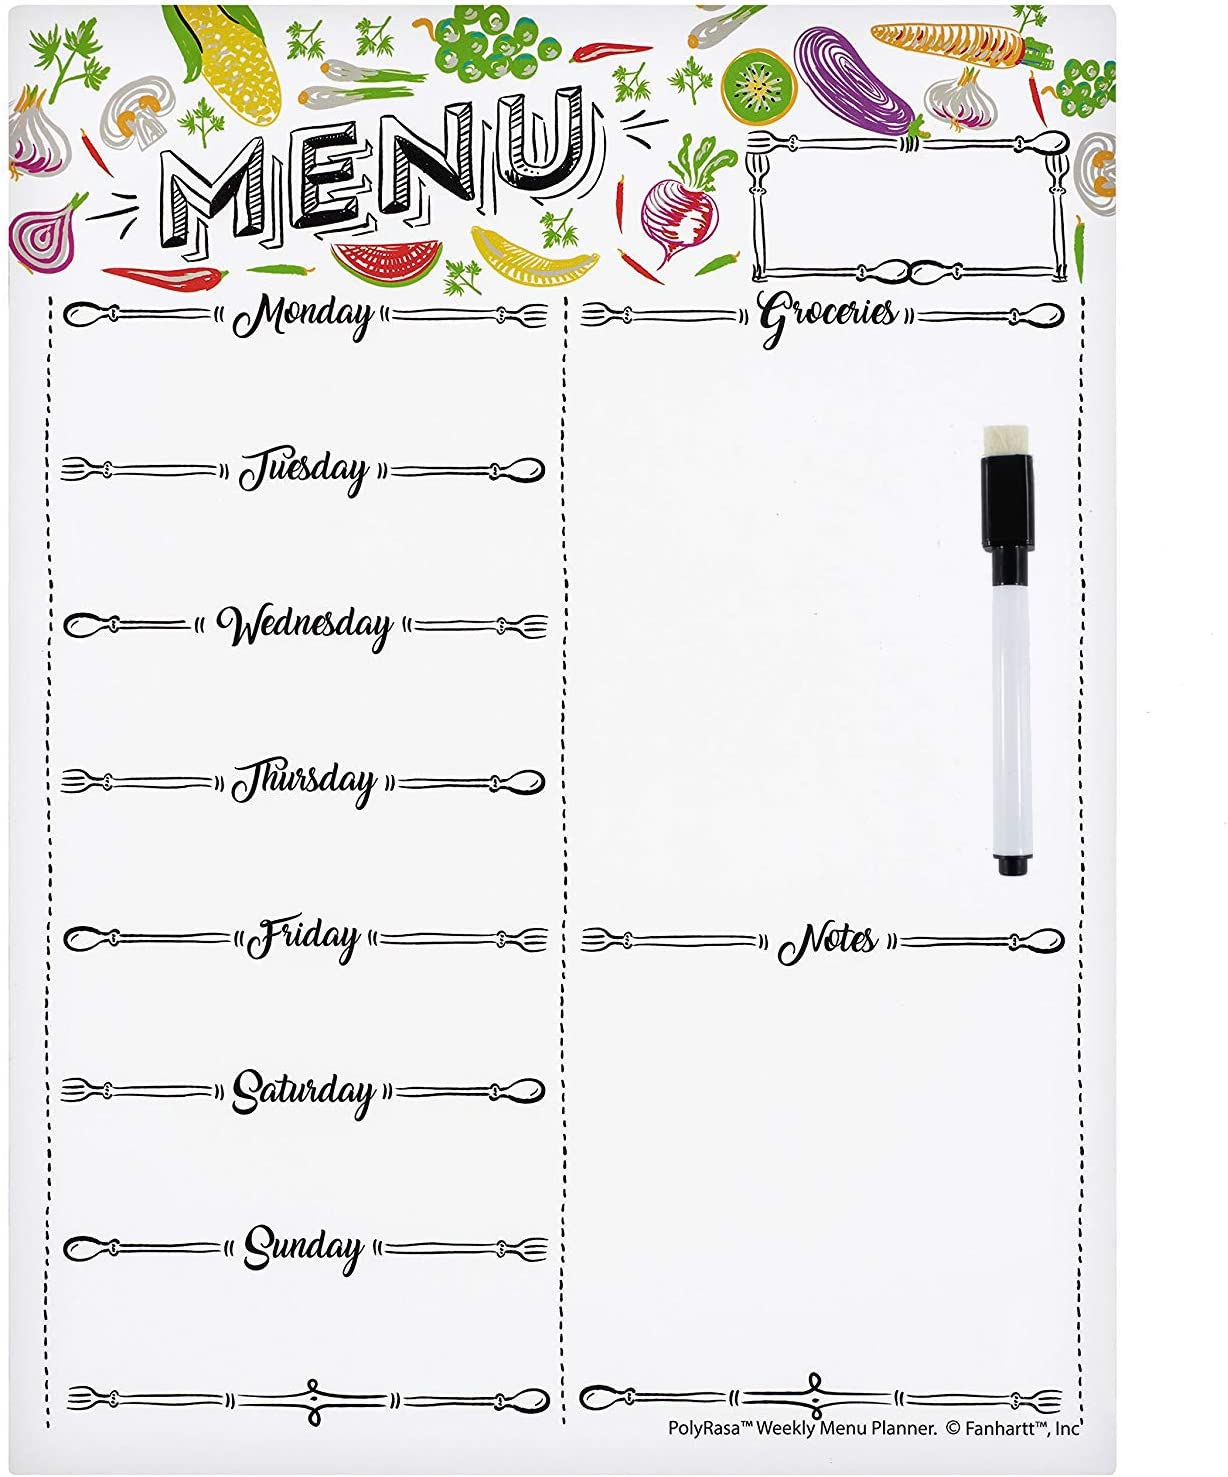 Pre-order Magnetic Weekly Fridge Planner Shopping List Memo or Notice Board Turquoise /& Pink Family Organiser Whiteboard Meal Planner 8 Marker Pens /& Gift Box Included Use it as a Calendar